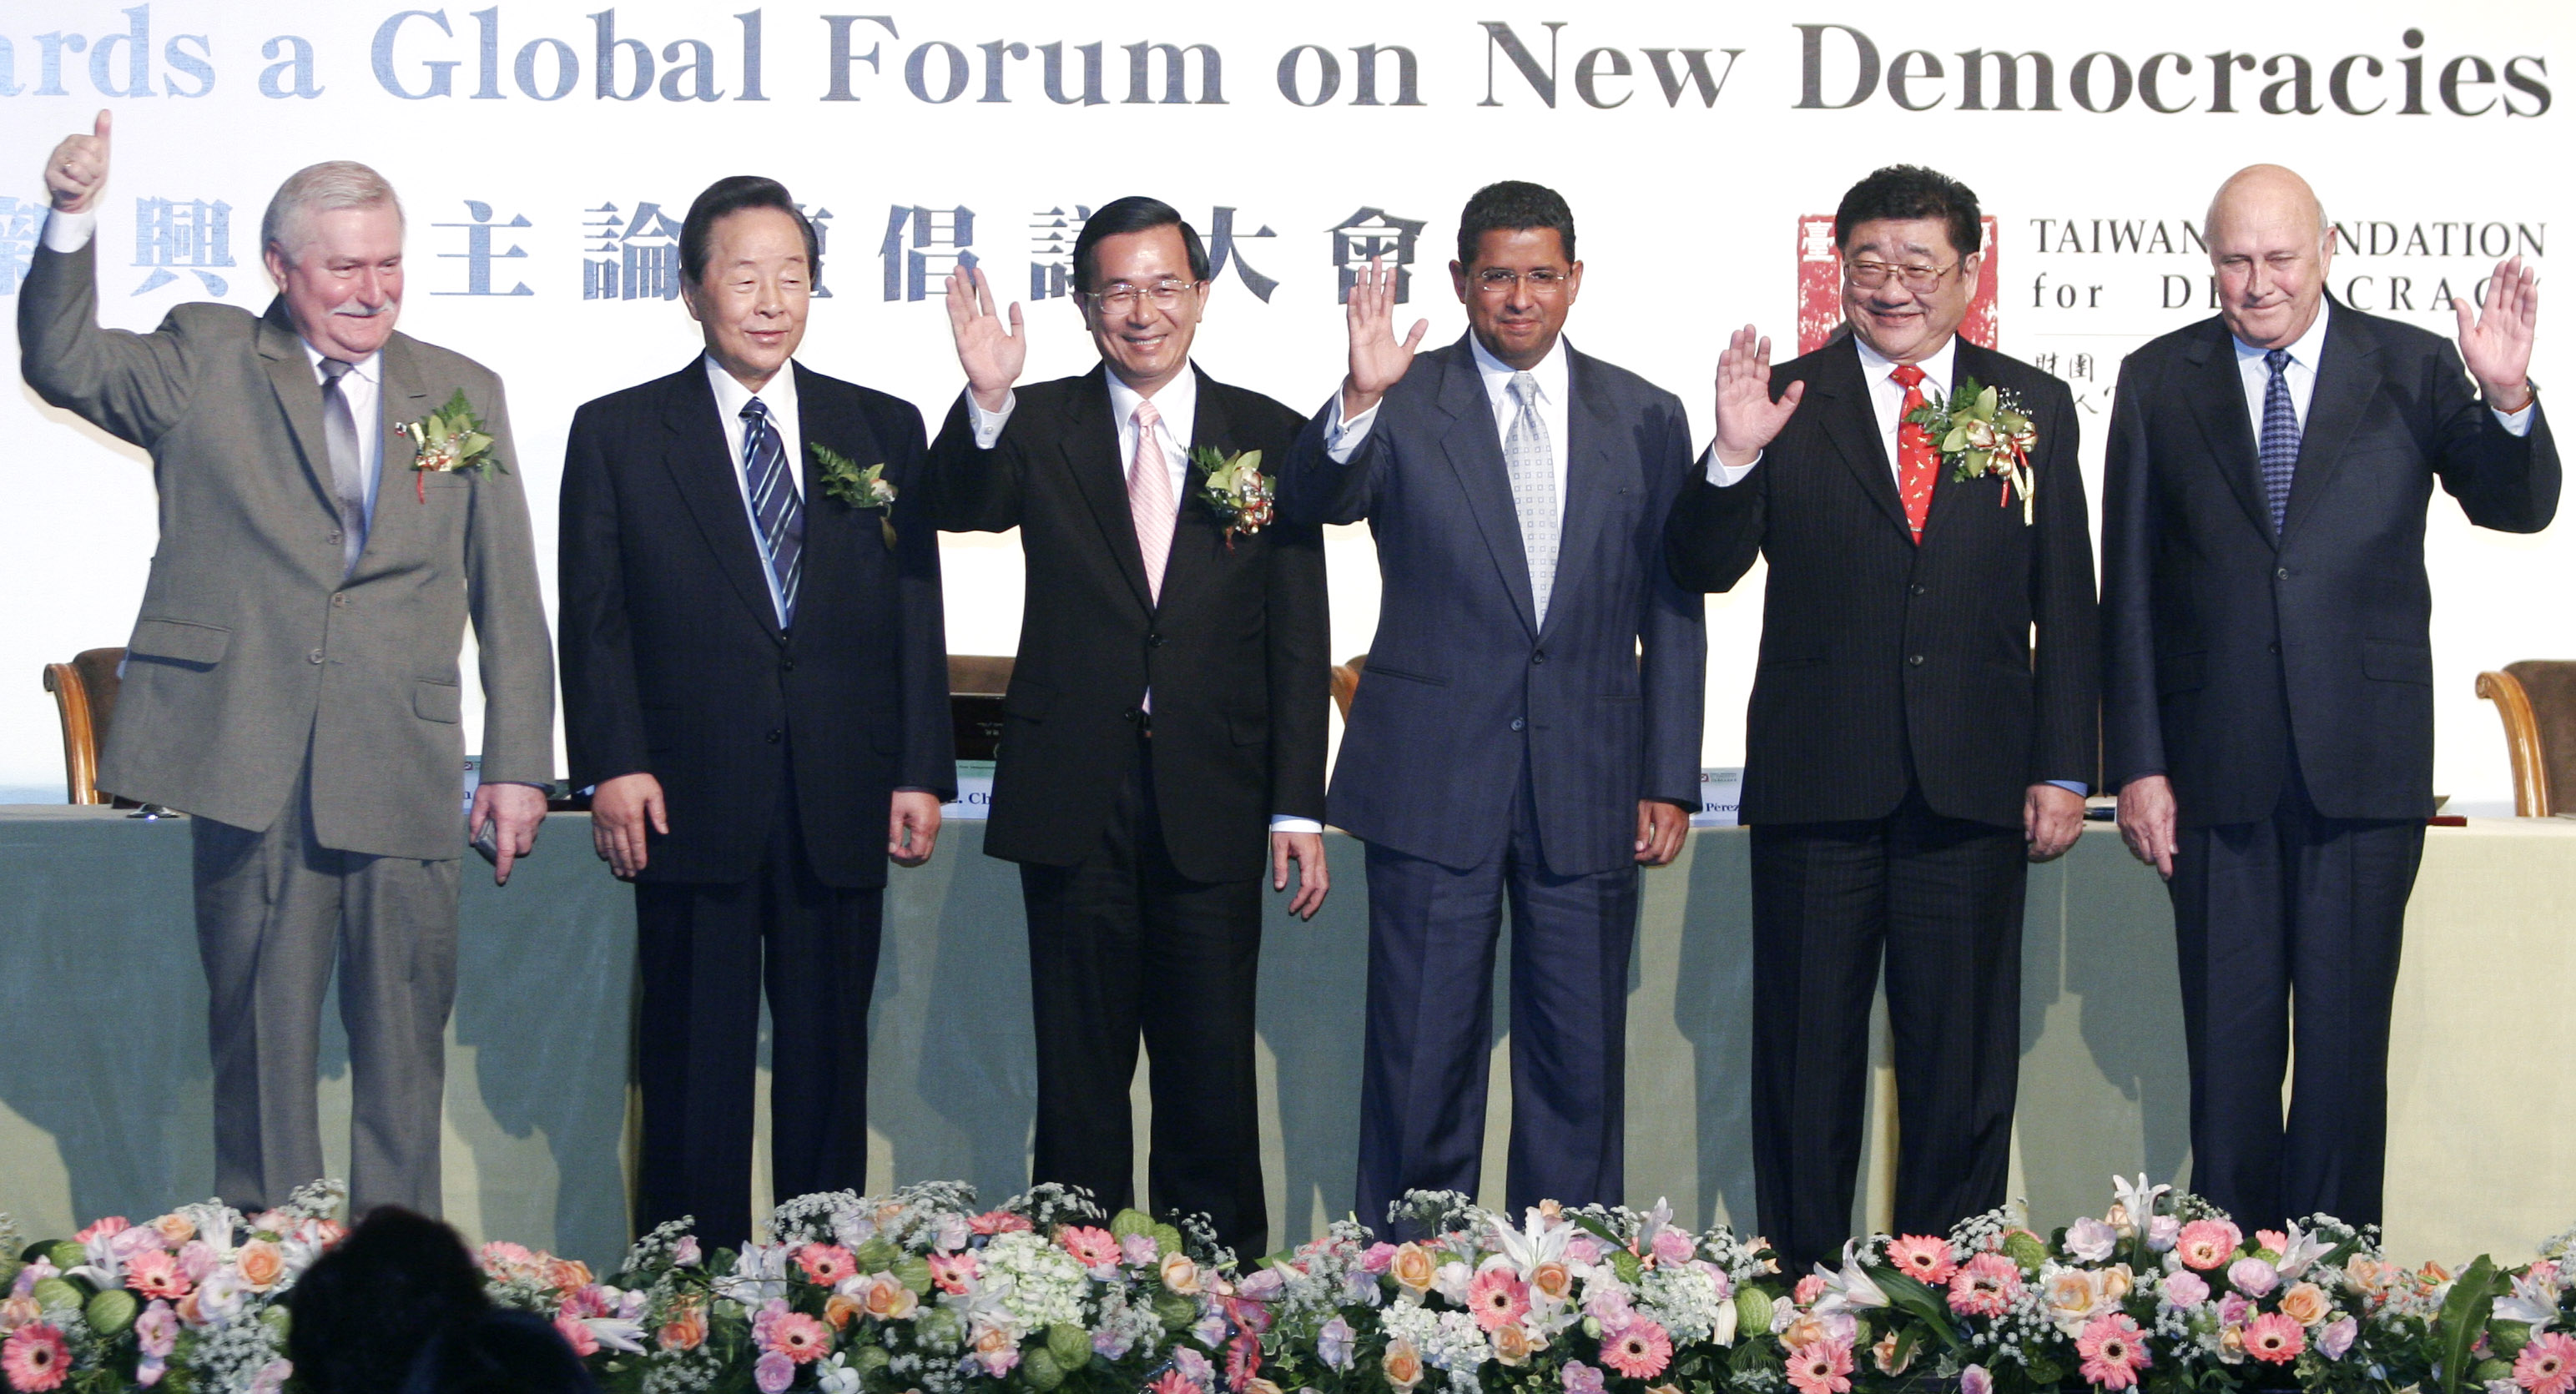 """President Chen Shui-bian (third from left) and five former foreign heads of state wave during the """"Towards a Global Forum on New Democracies"""" event i..."""